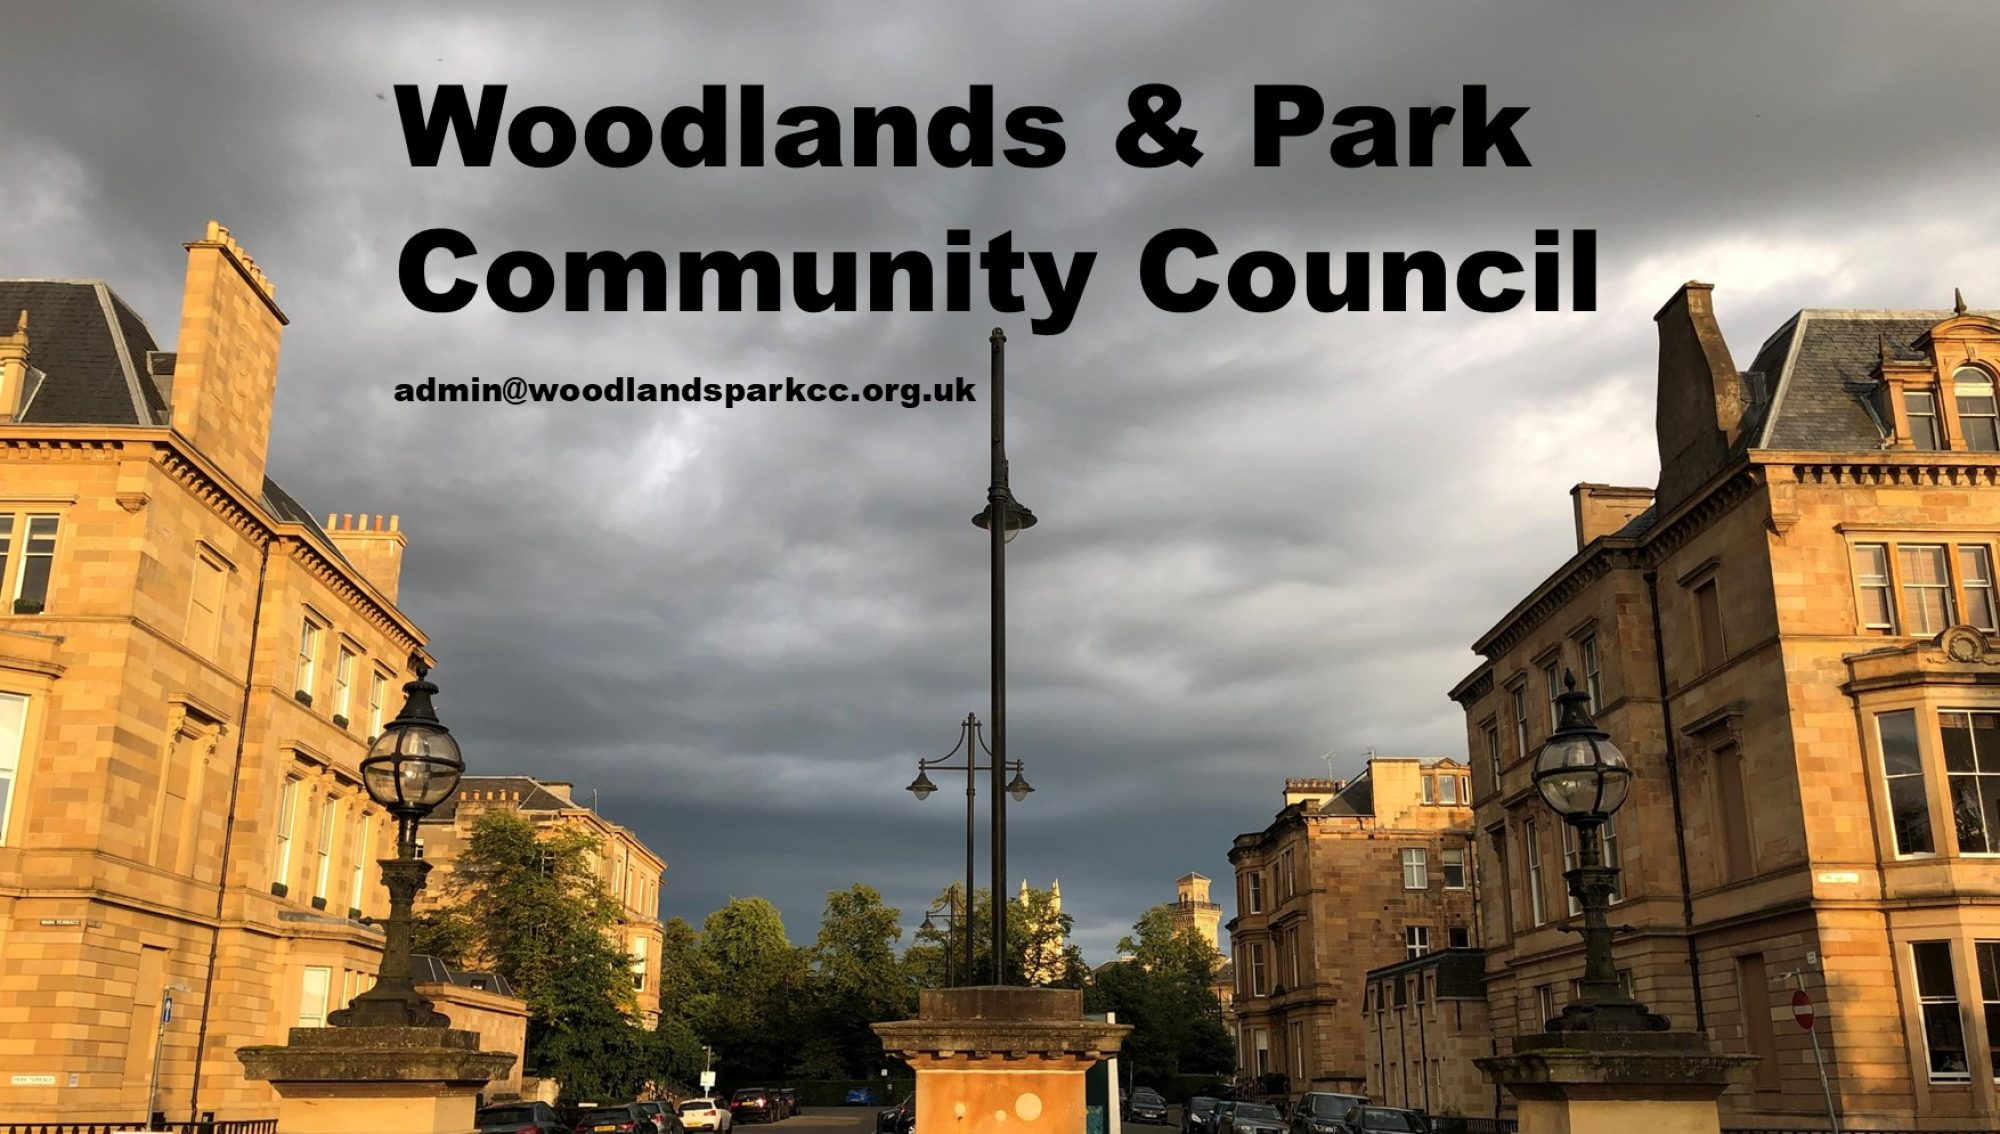 Woodlands & Park Community Council